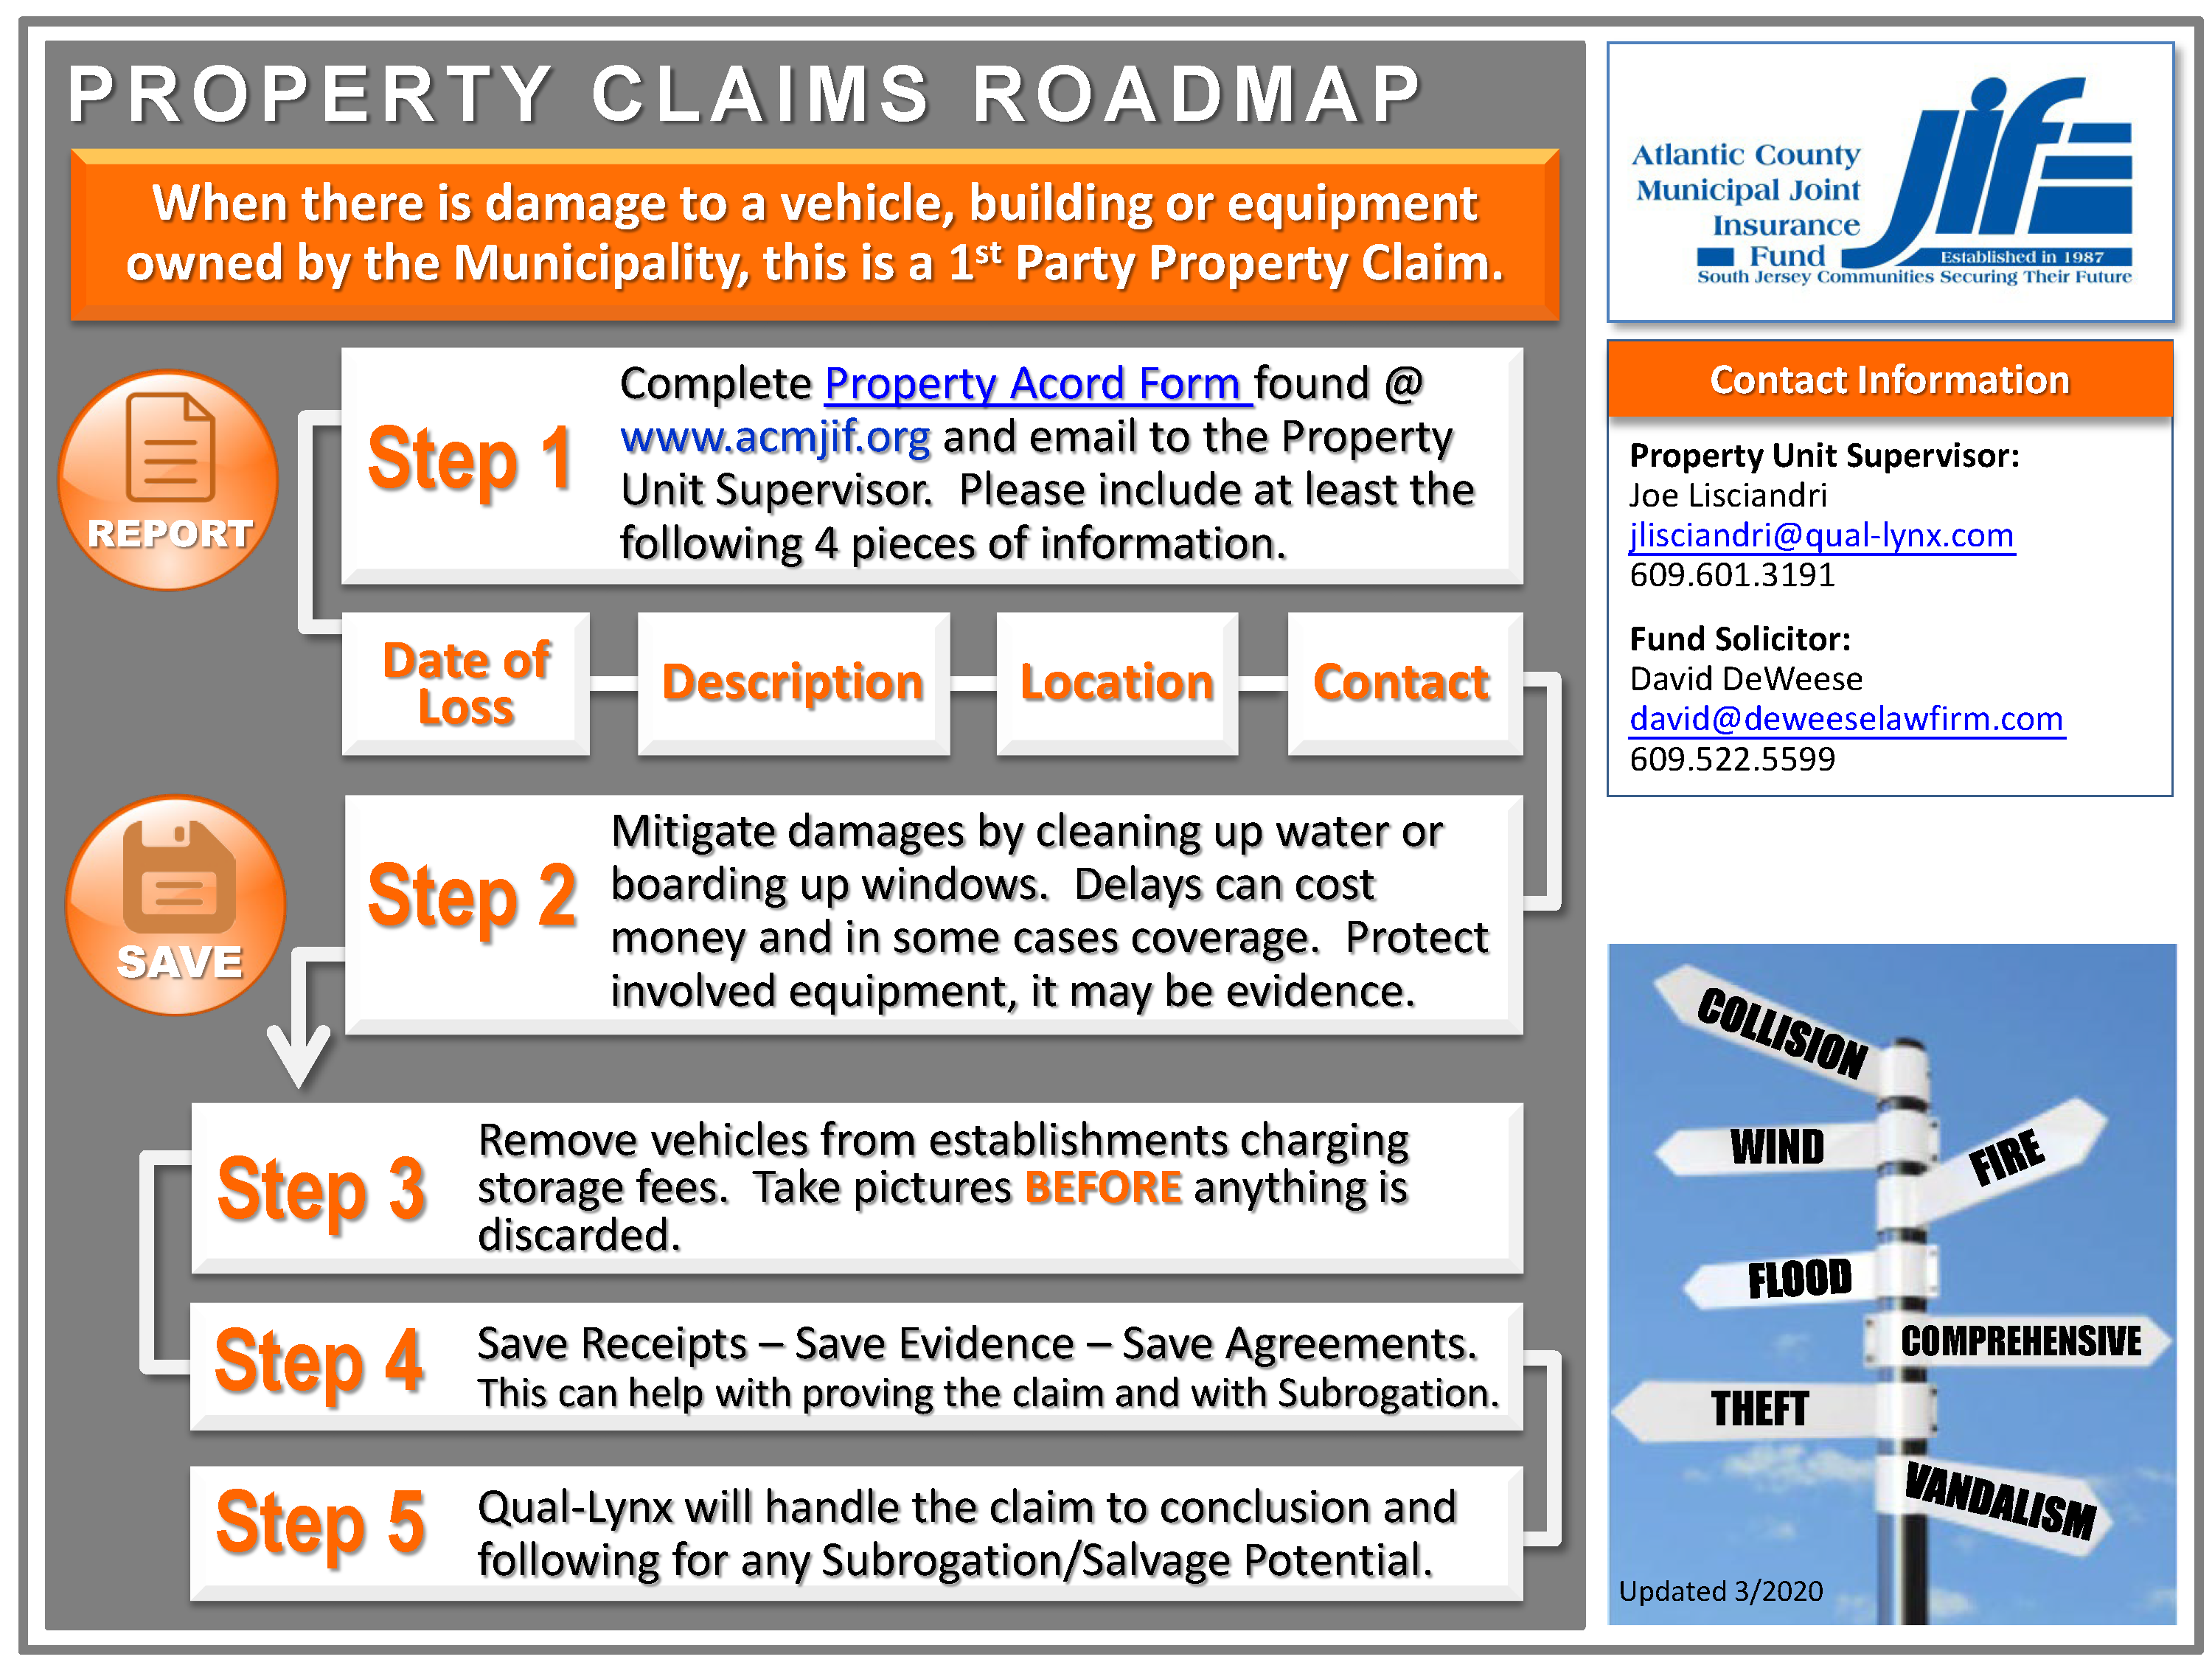 Property Claims Roadmap